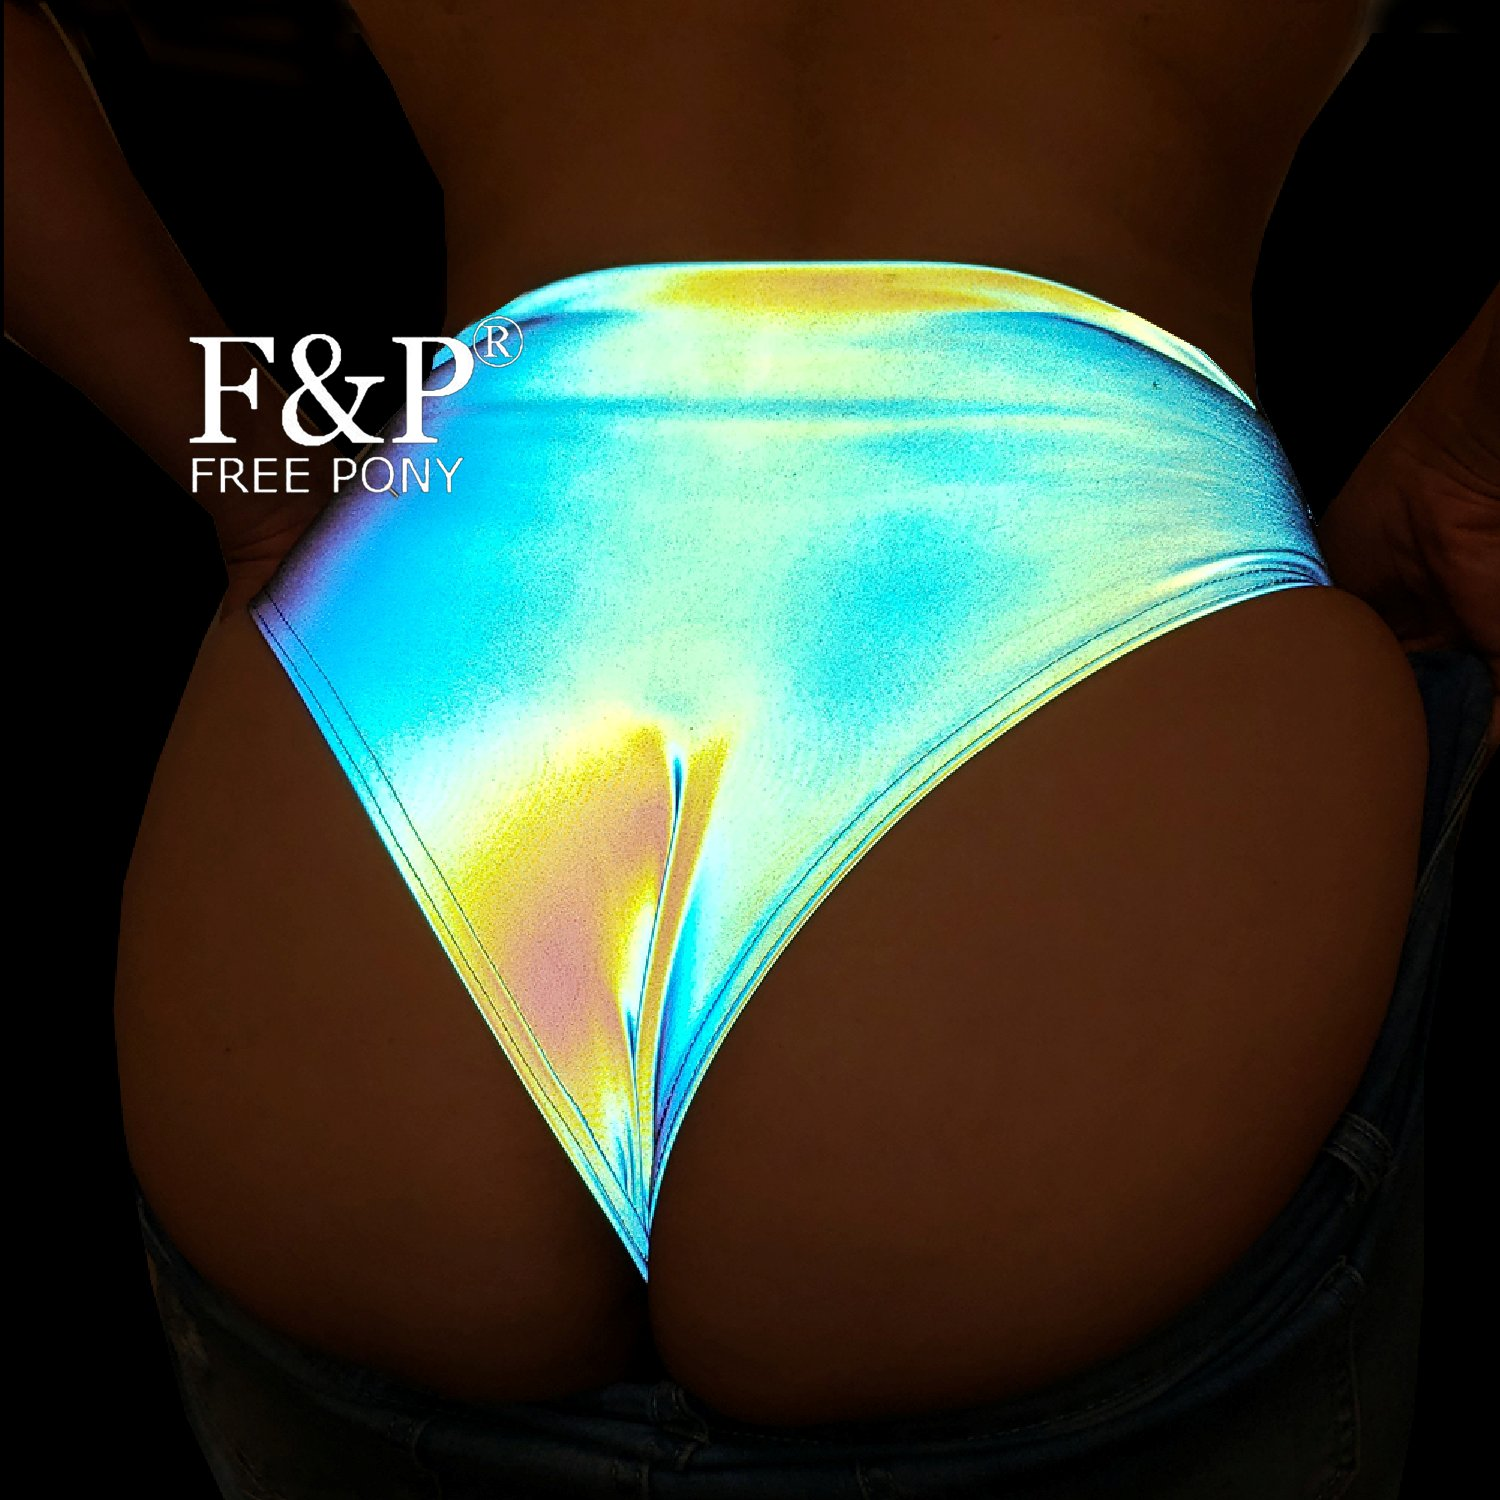 Rainbow Reflective Clothing Booty Shorts Burning Man Festival  Carnival Costume Gogo Pole Dance Bottom Wear Clothes